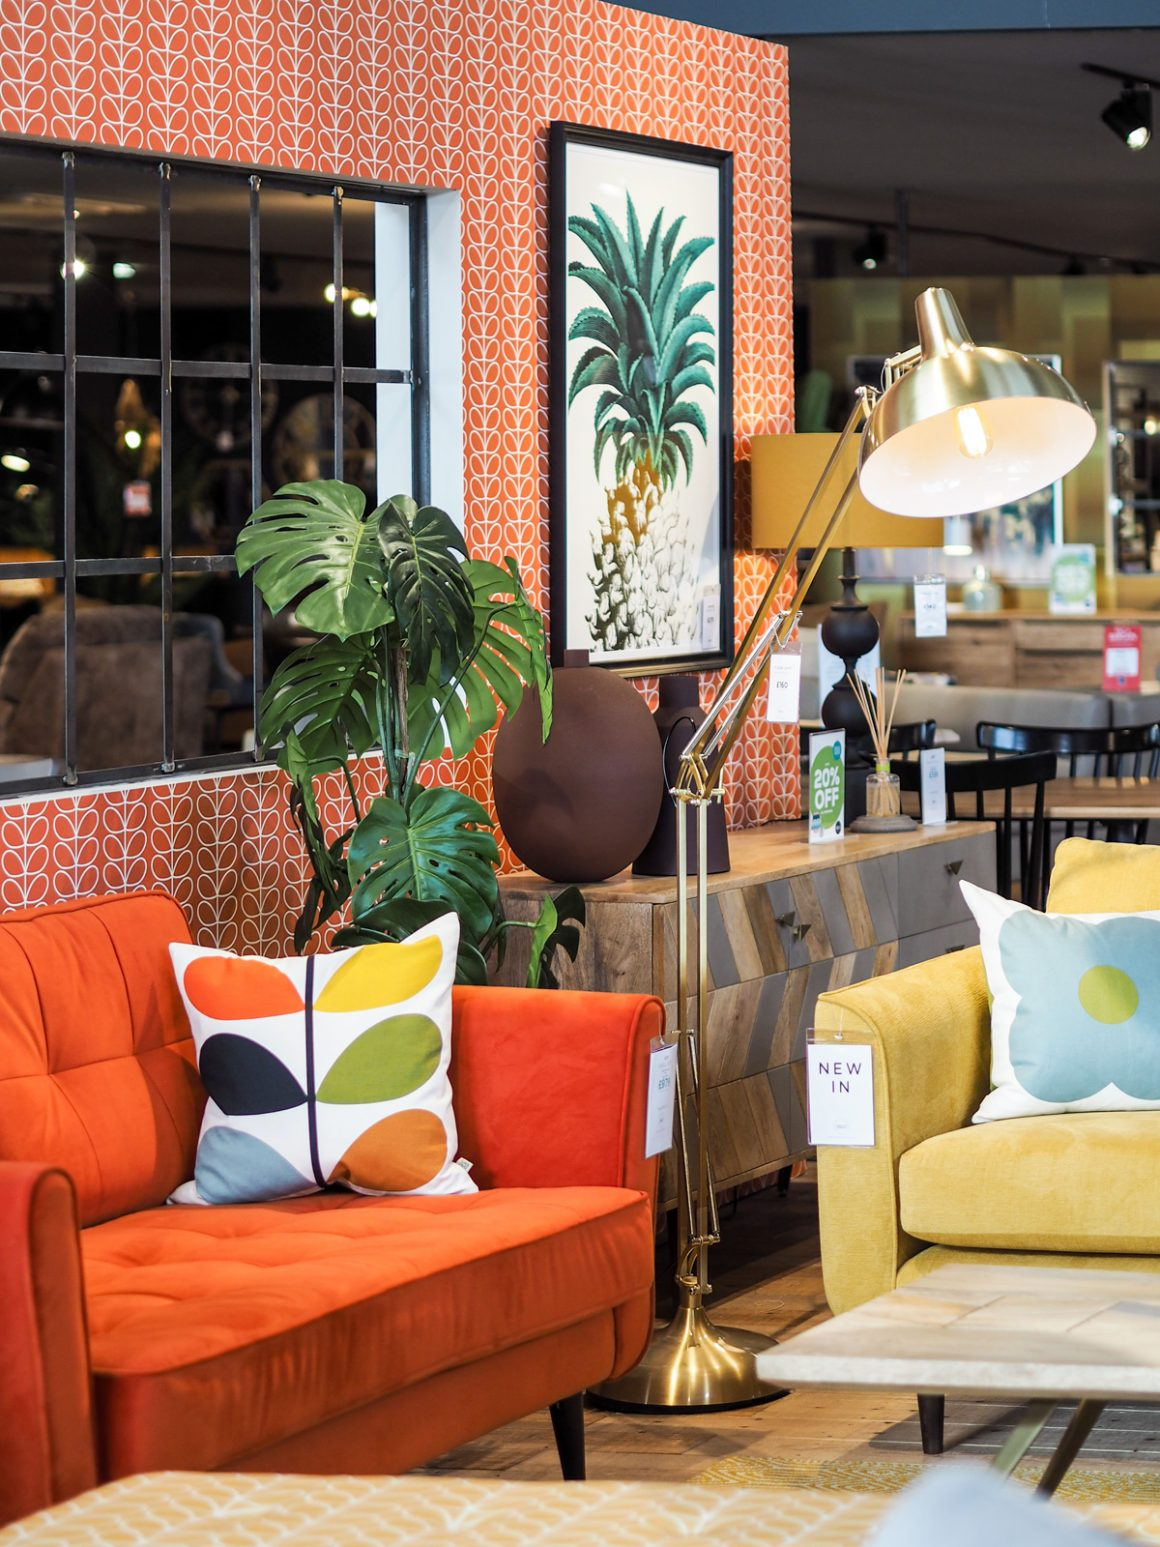 Orla Kiely at Barker and Stonehouse in Leeds